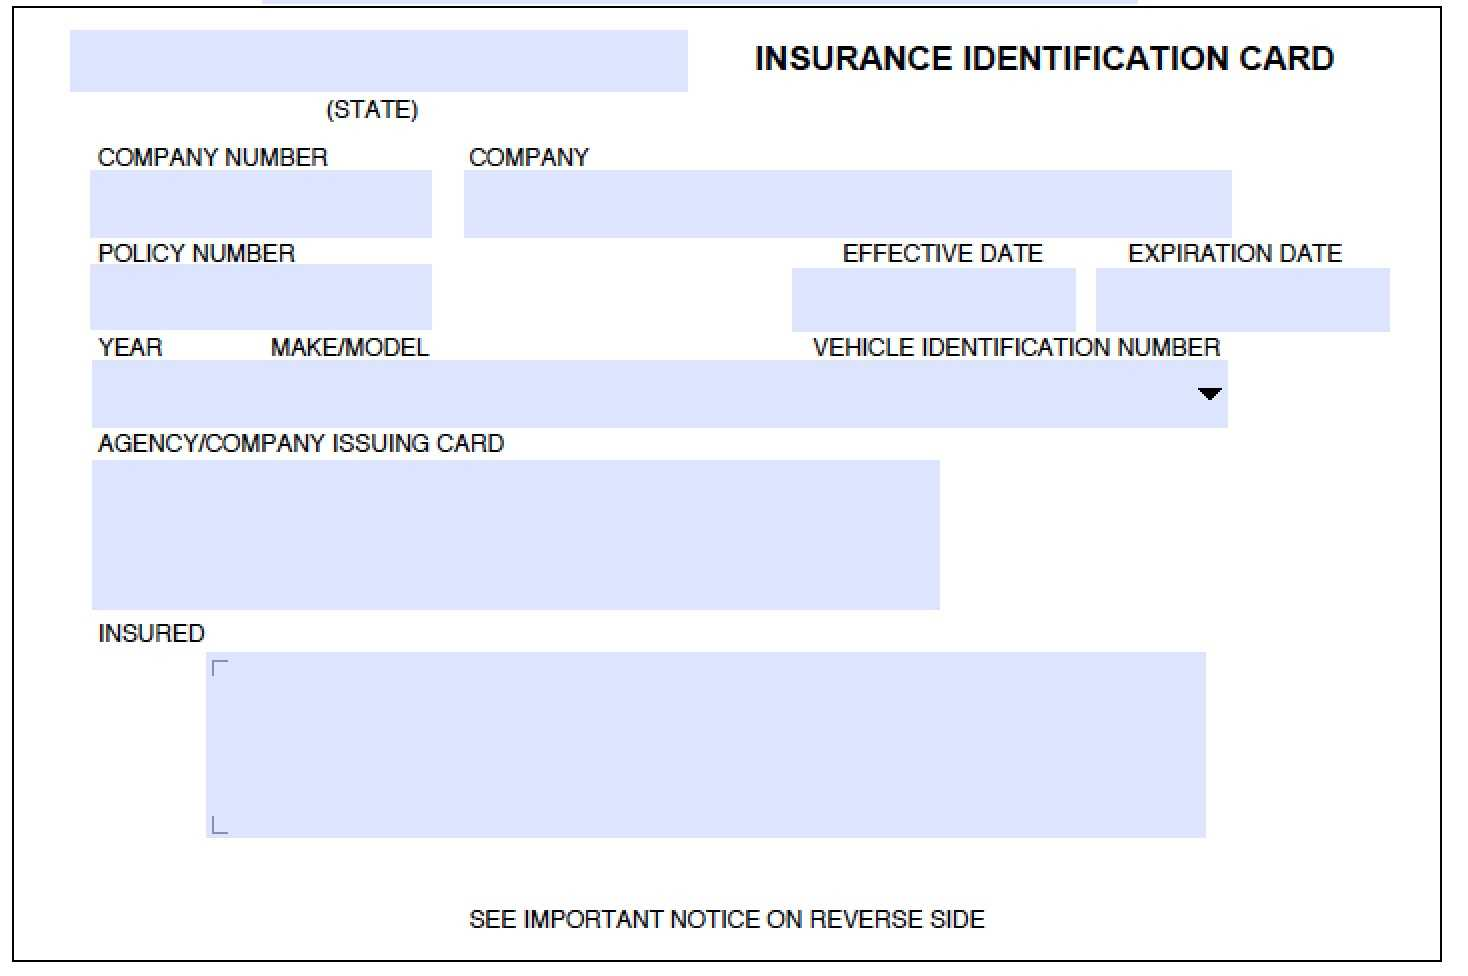 002 Fake Proof Of Insurance Templates Template Ideas Auto Id Intended For Free Fake Auto Insurance Card Template